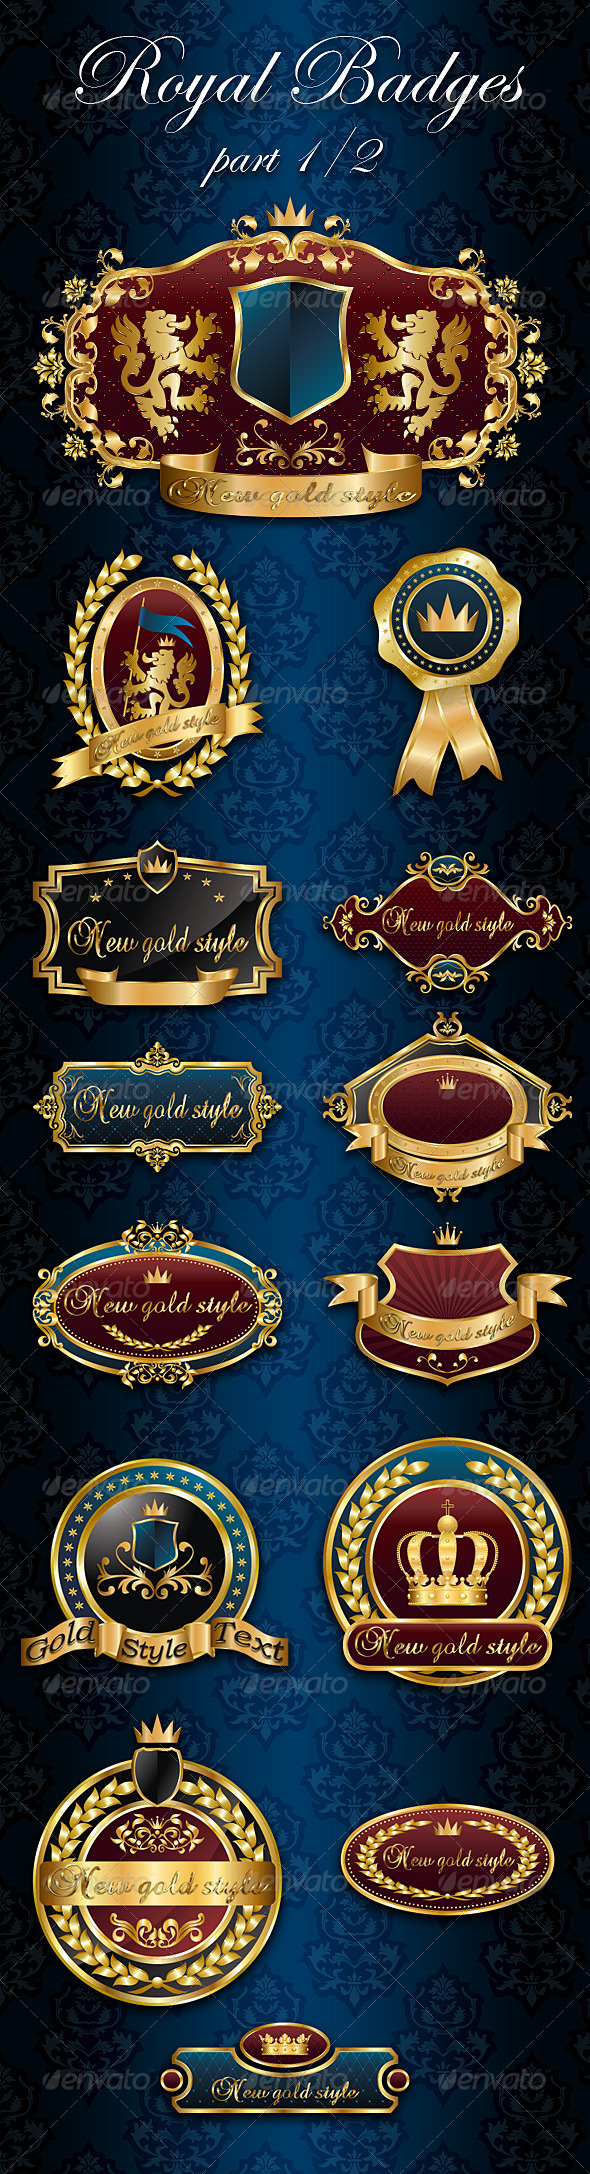 GraphicRiver Royal Badges Frames part 1 2 1762579